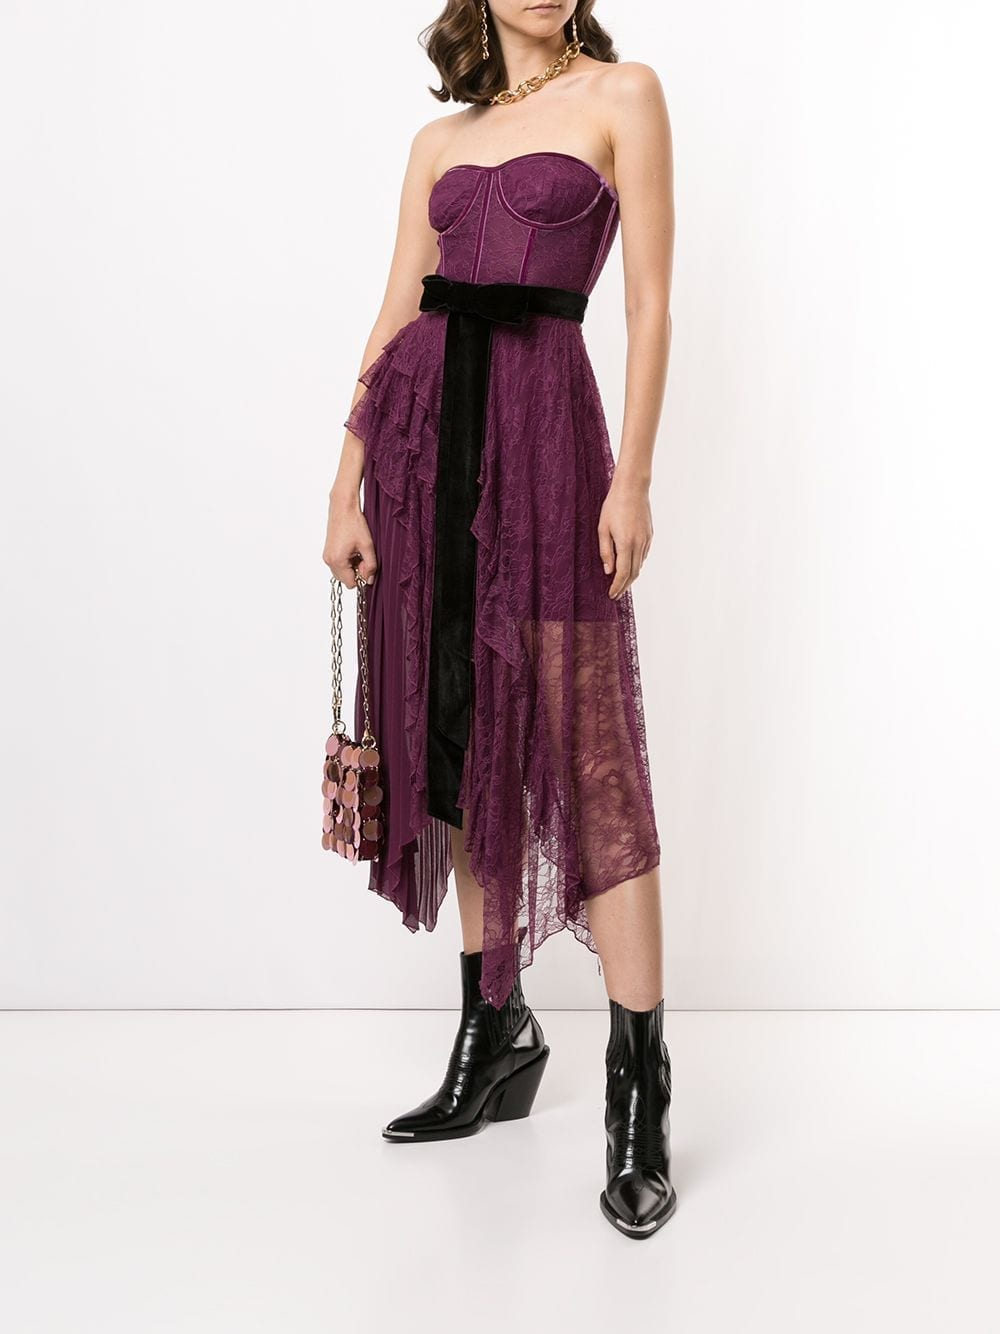 ALICE+OLIVIA Bree Bustier Maxi Dress